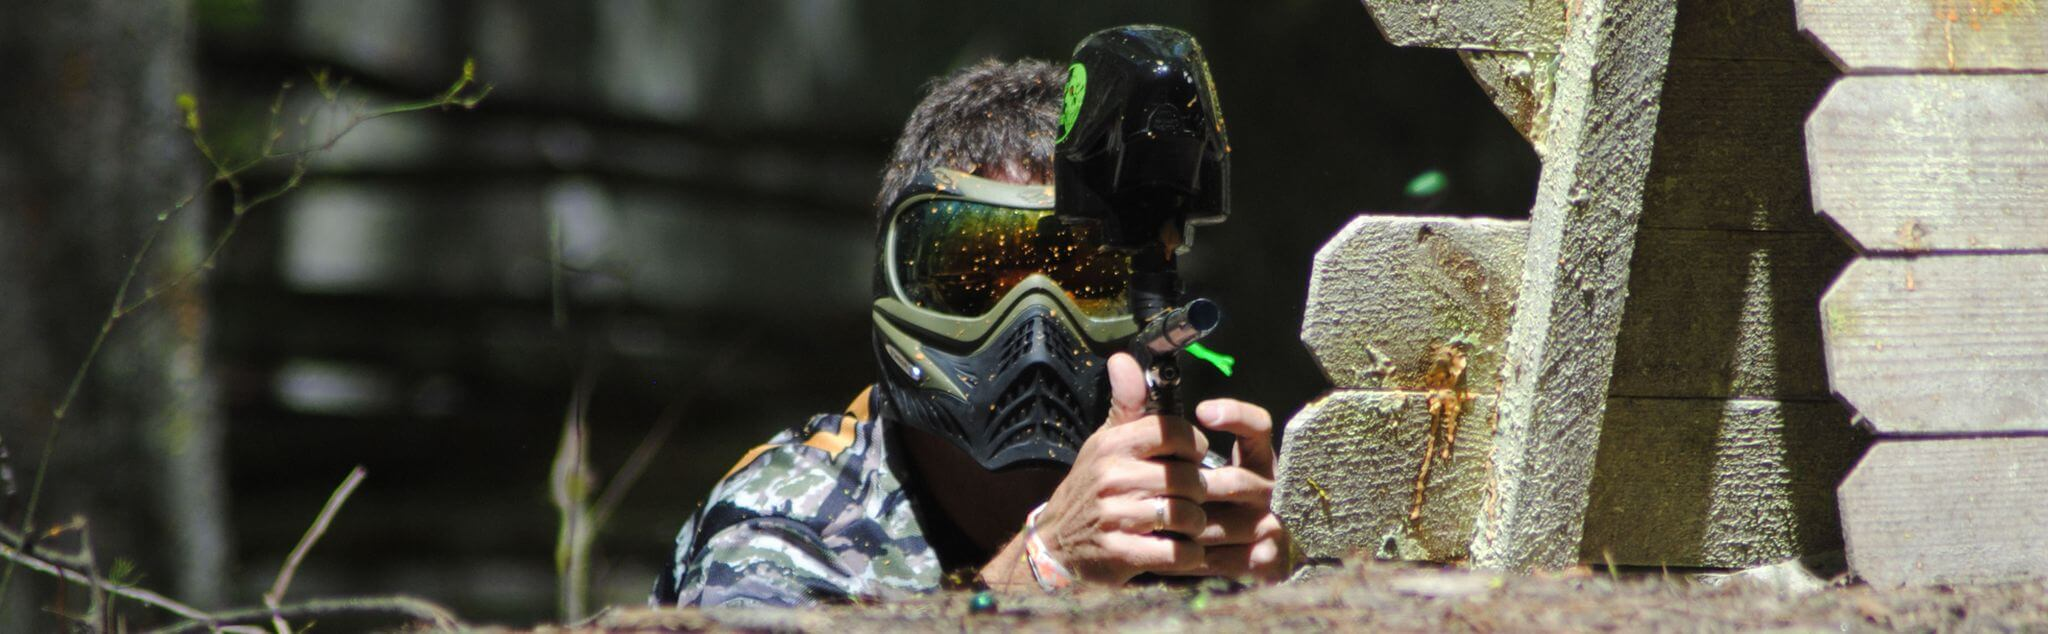 Paintball a Genova